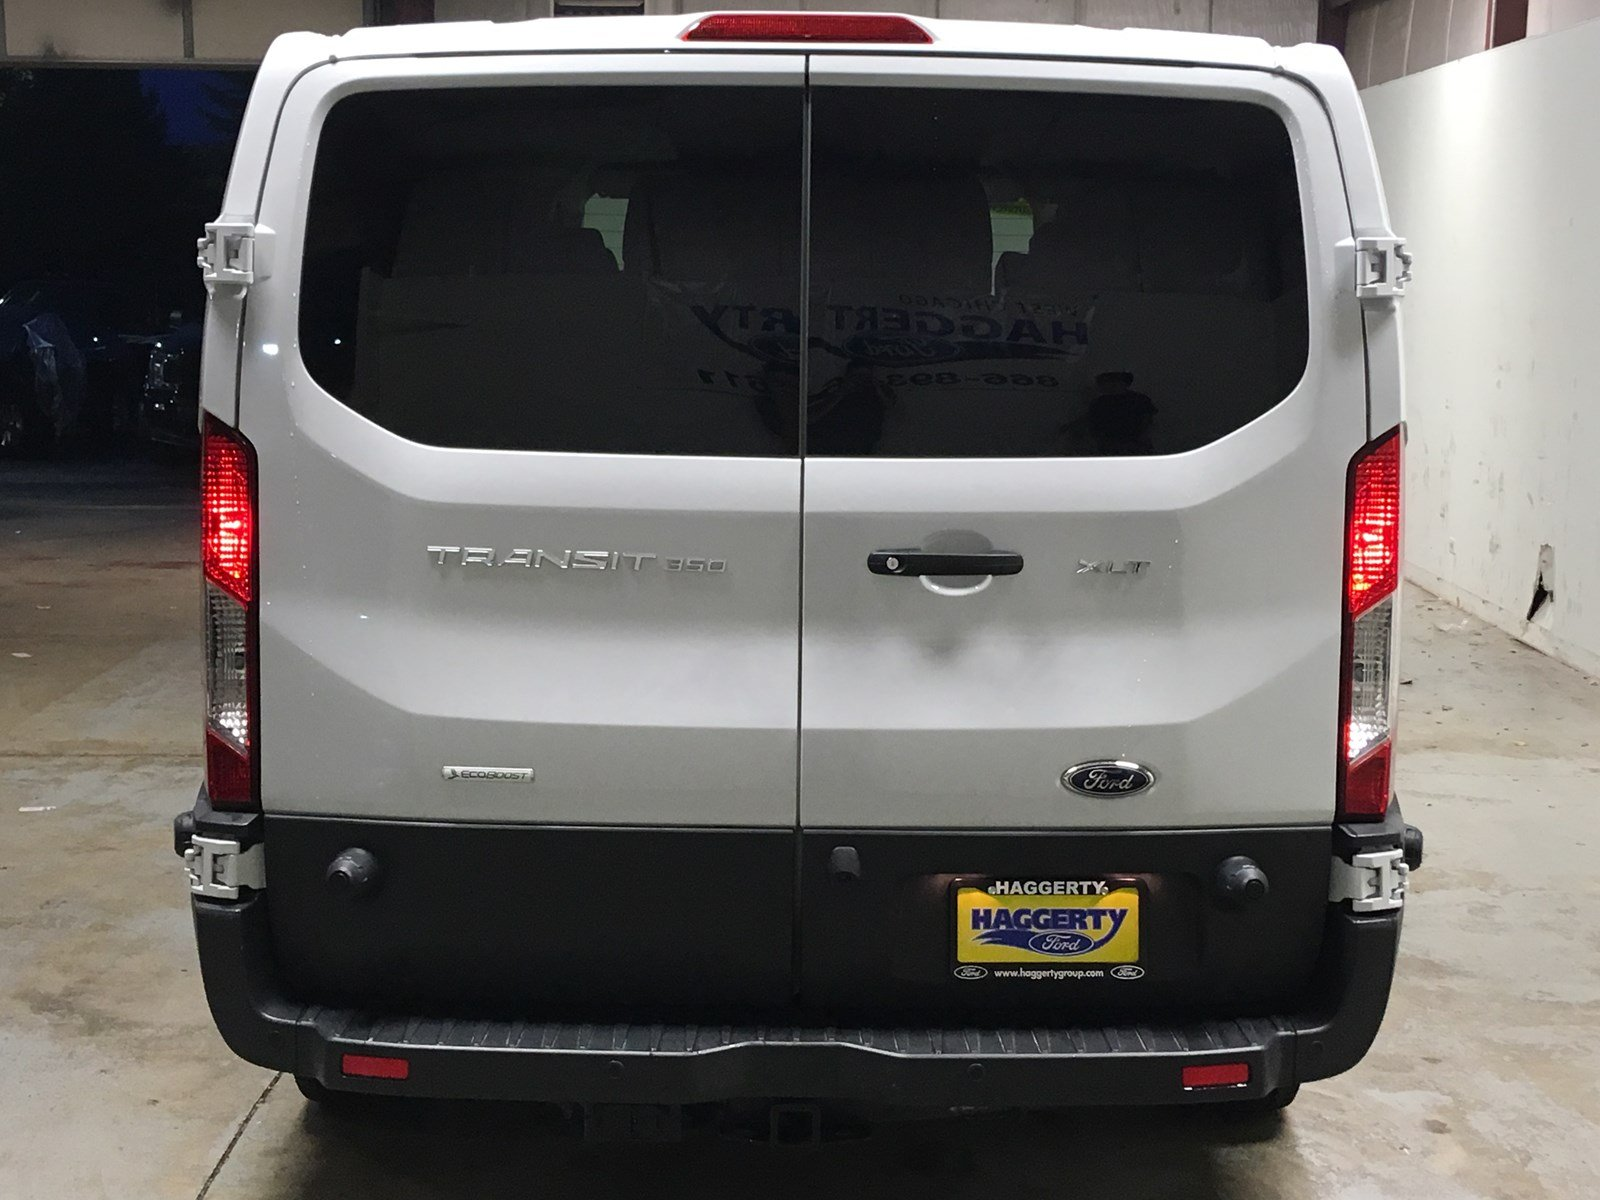 Certified Pre-Owned 2018 Ford Transit Passenger Wagon XLT Ecoboost 15 Passenger